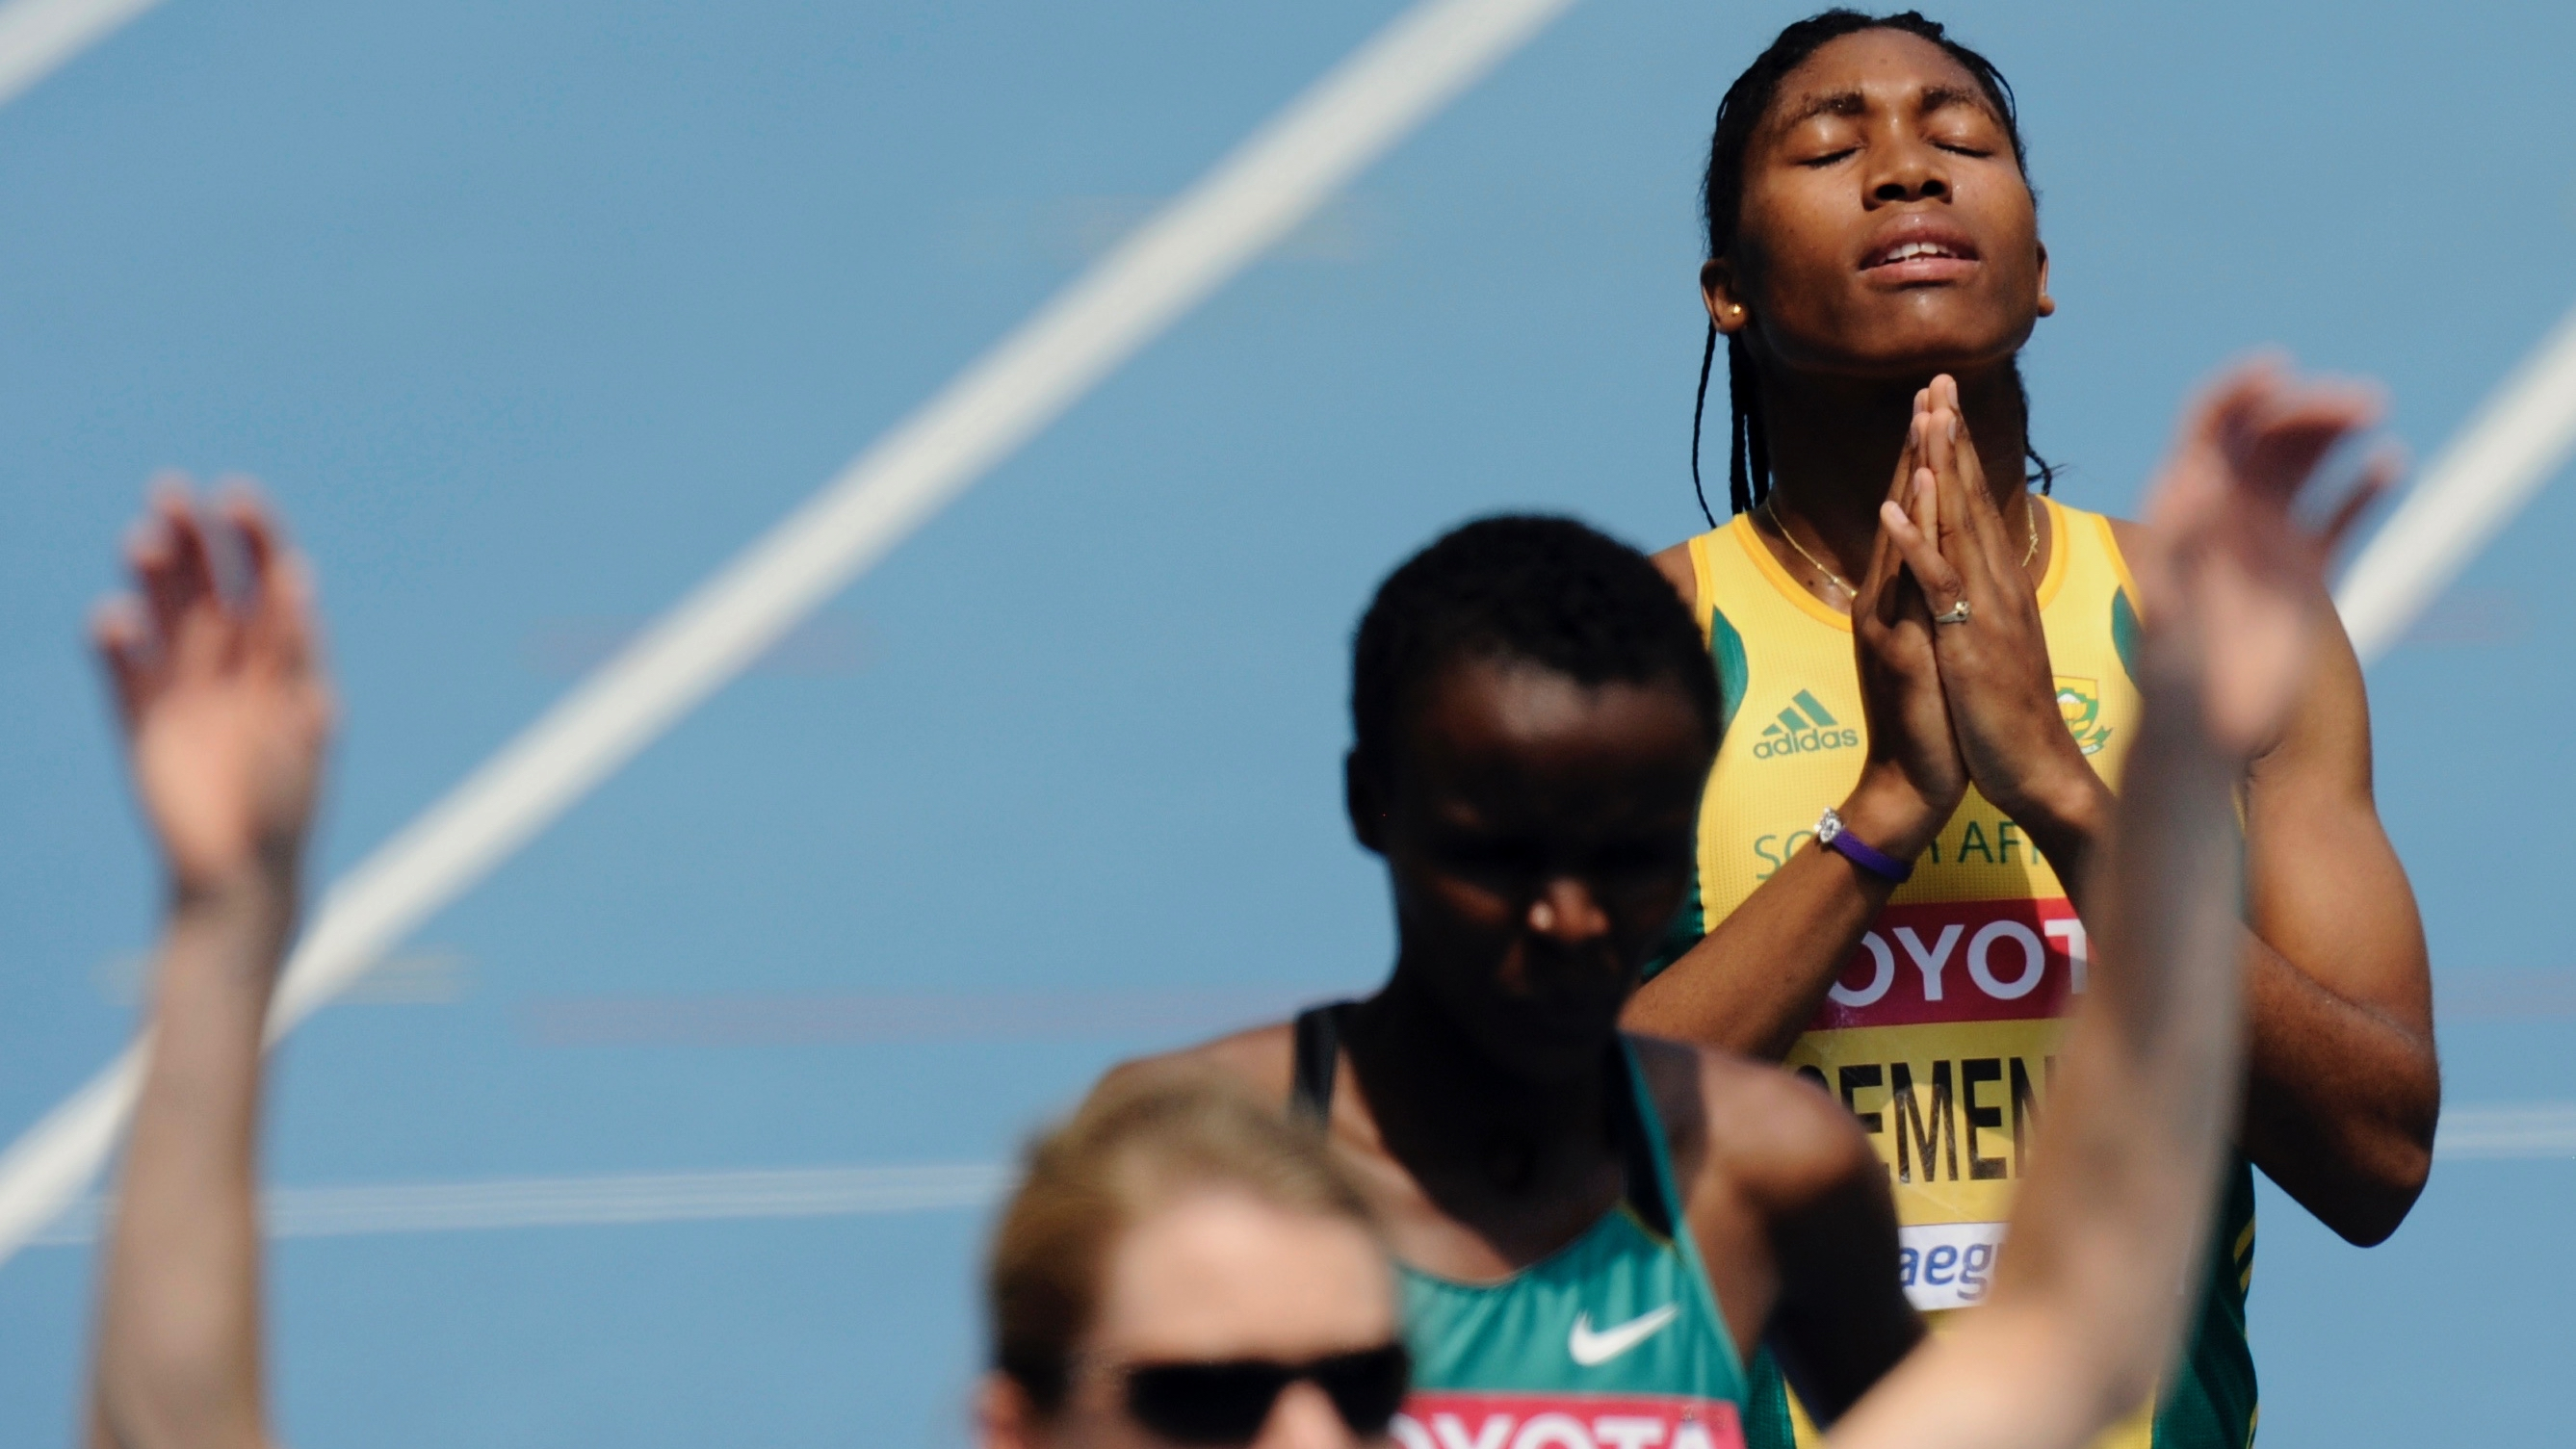 Caster Semenya ruling: Athlete may still challenge IAAF regulations